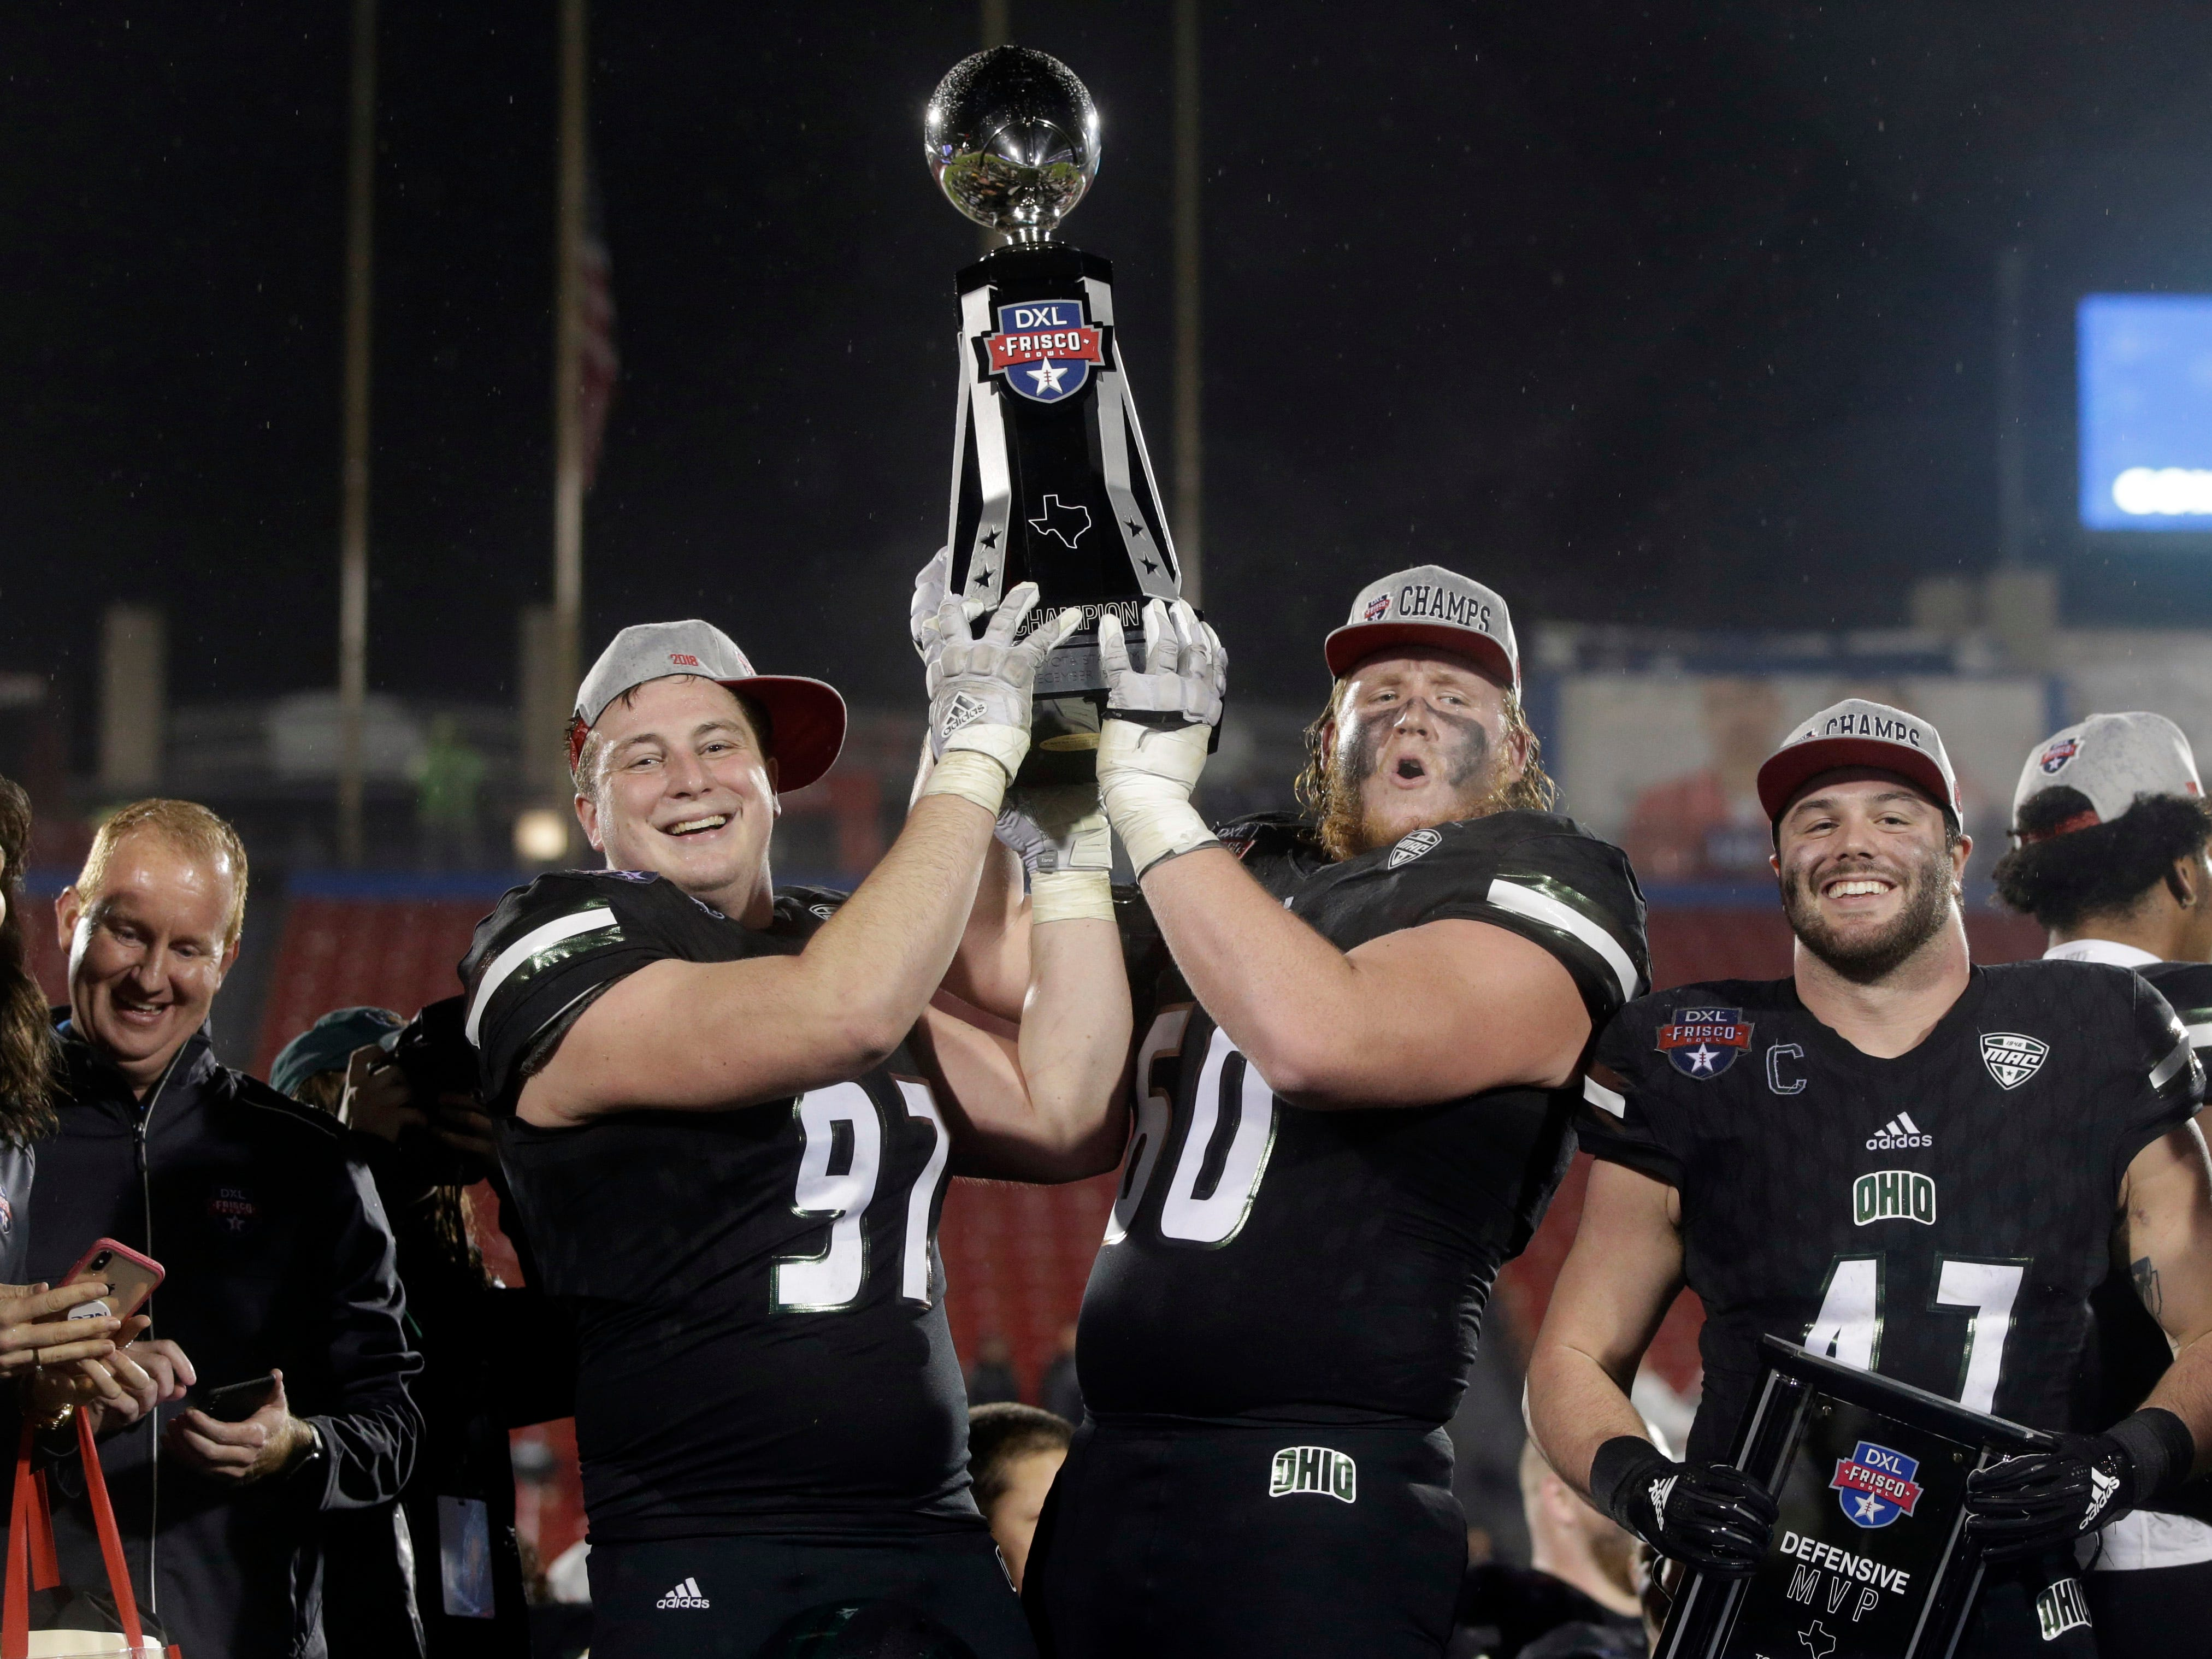 Ohio offensive lineman Austen Pleasants (60) and defensive lineman Kent Berger (97) hold up the trophy after winning the Frisco Bowl, 27-0, over San Diego State at Toyota Stadium.